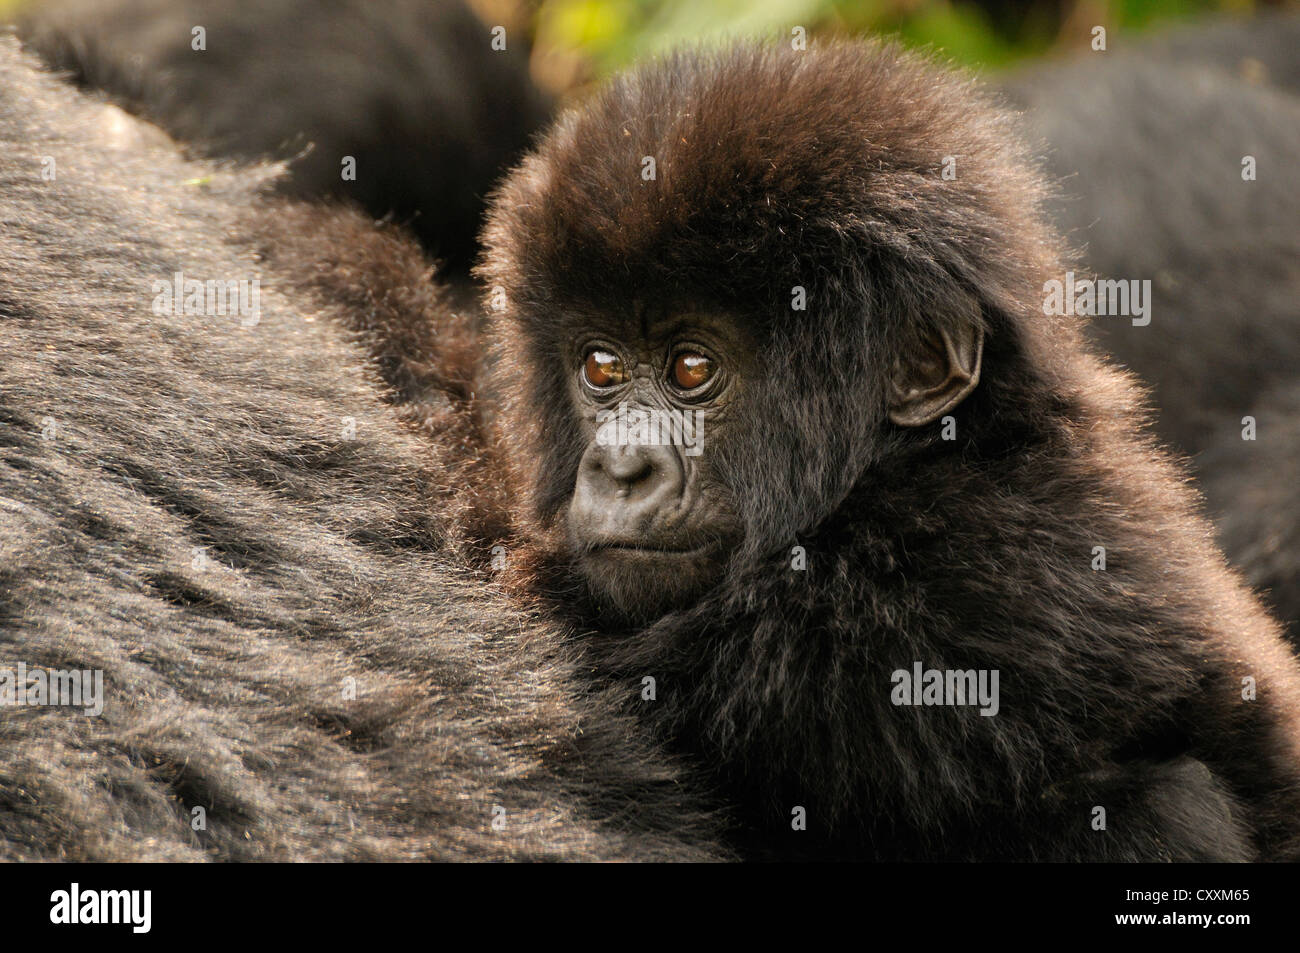 Baby Mountain Gorilla (Gorilla beringei beringei) from the Hirwa group at the foot of the Gahinga Volcano - Stock Image